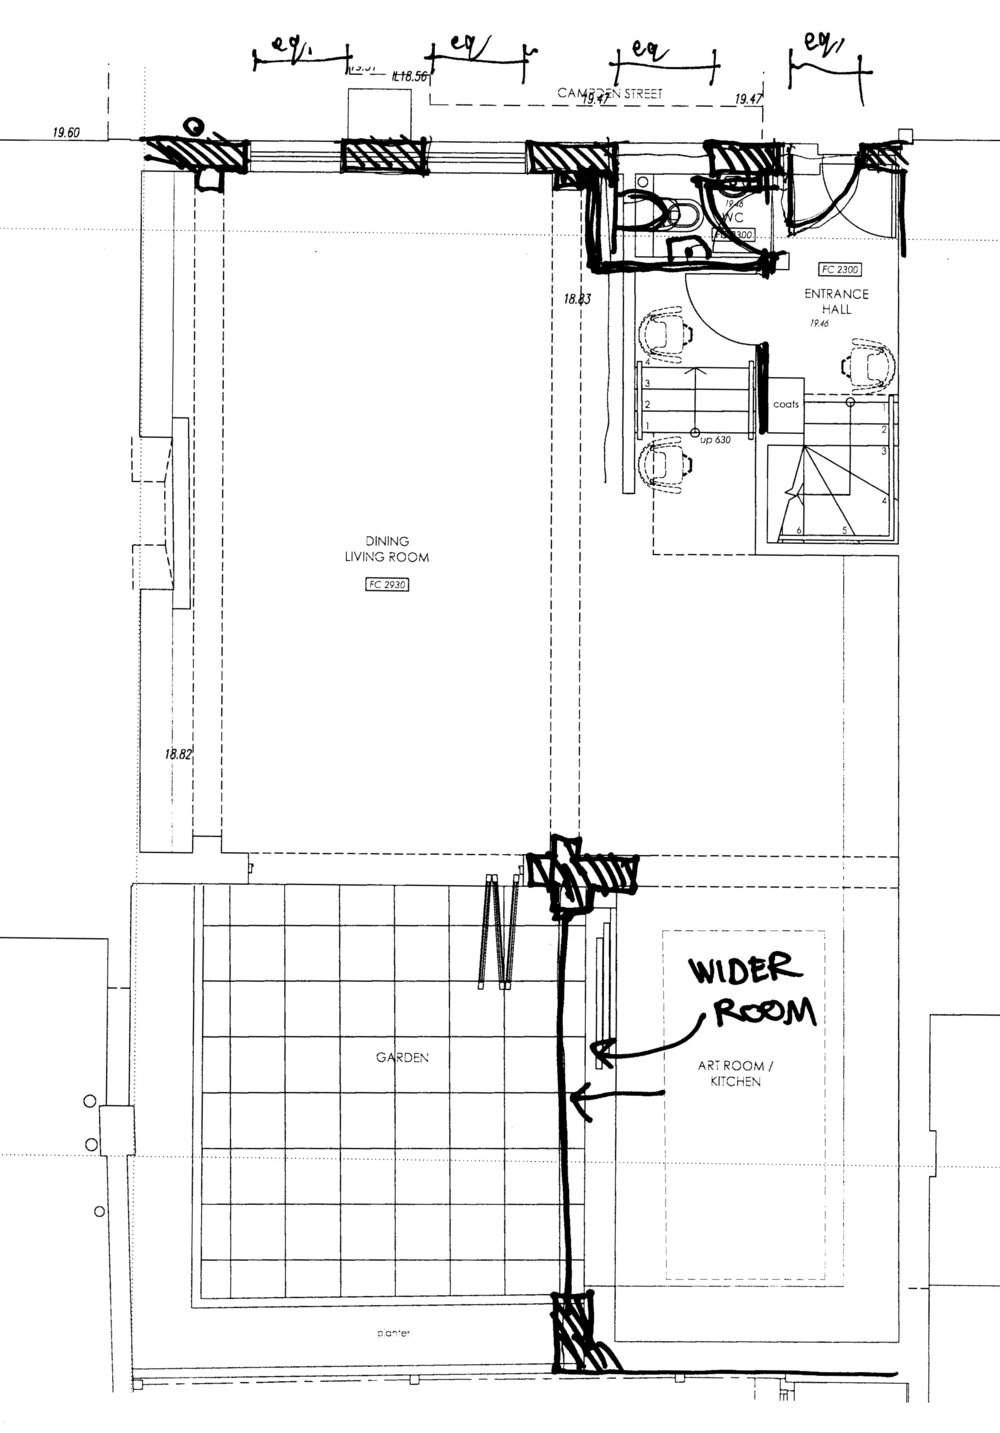 FINEarchitecture_CampdenStreet_Sketch2.jpg